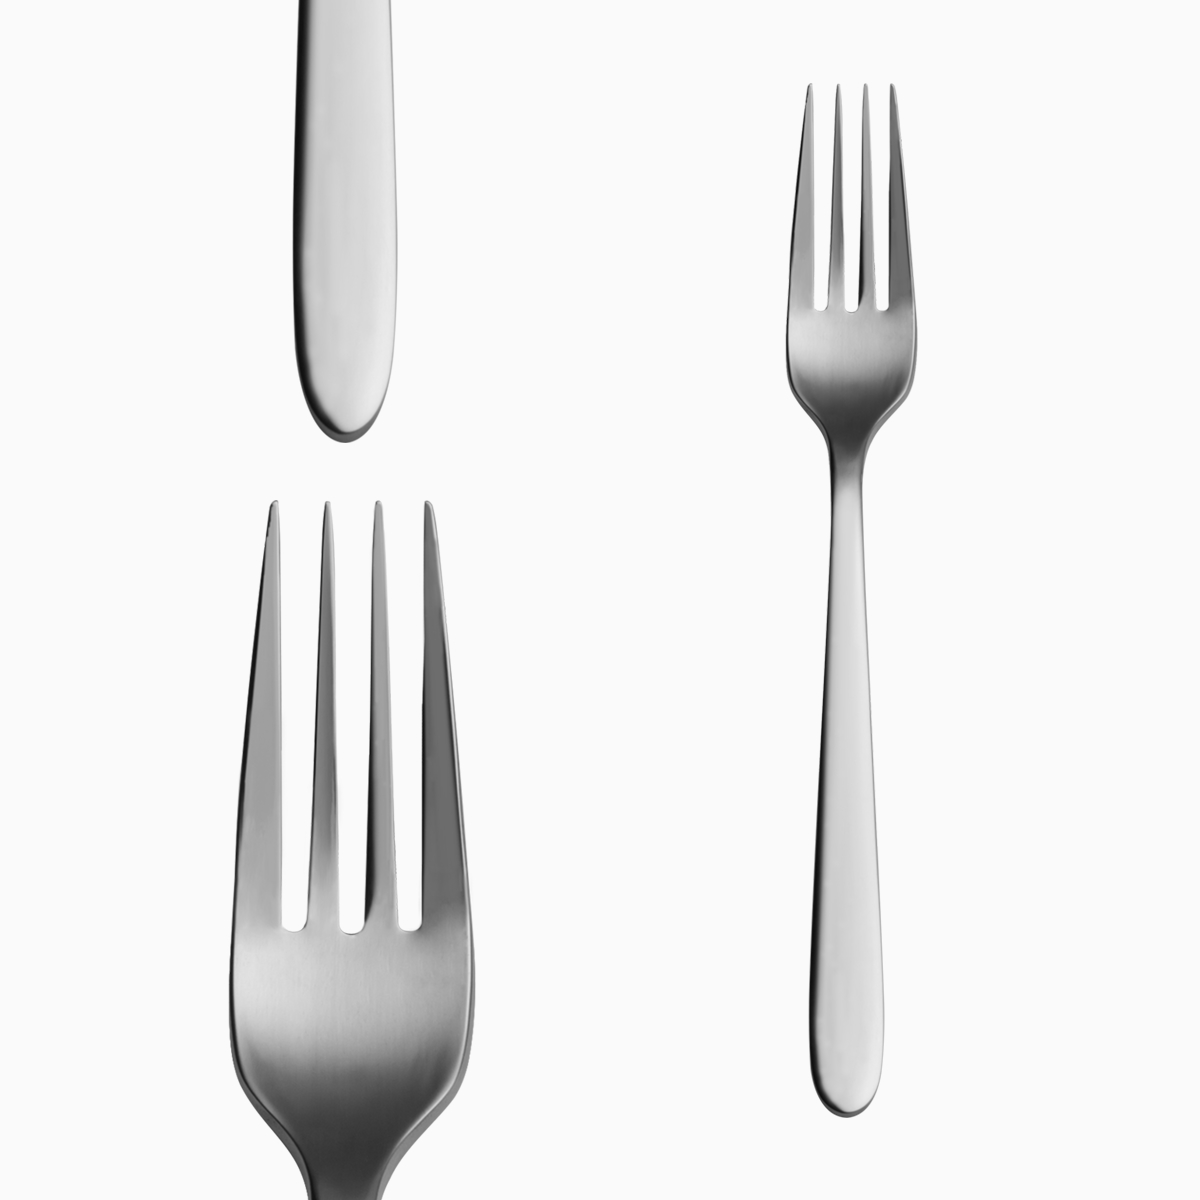 Table fork - Callisto CR